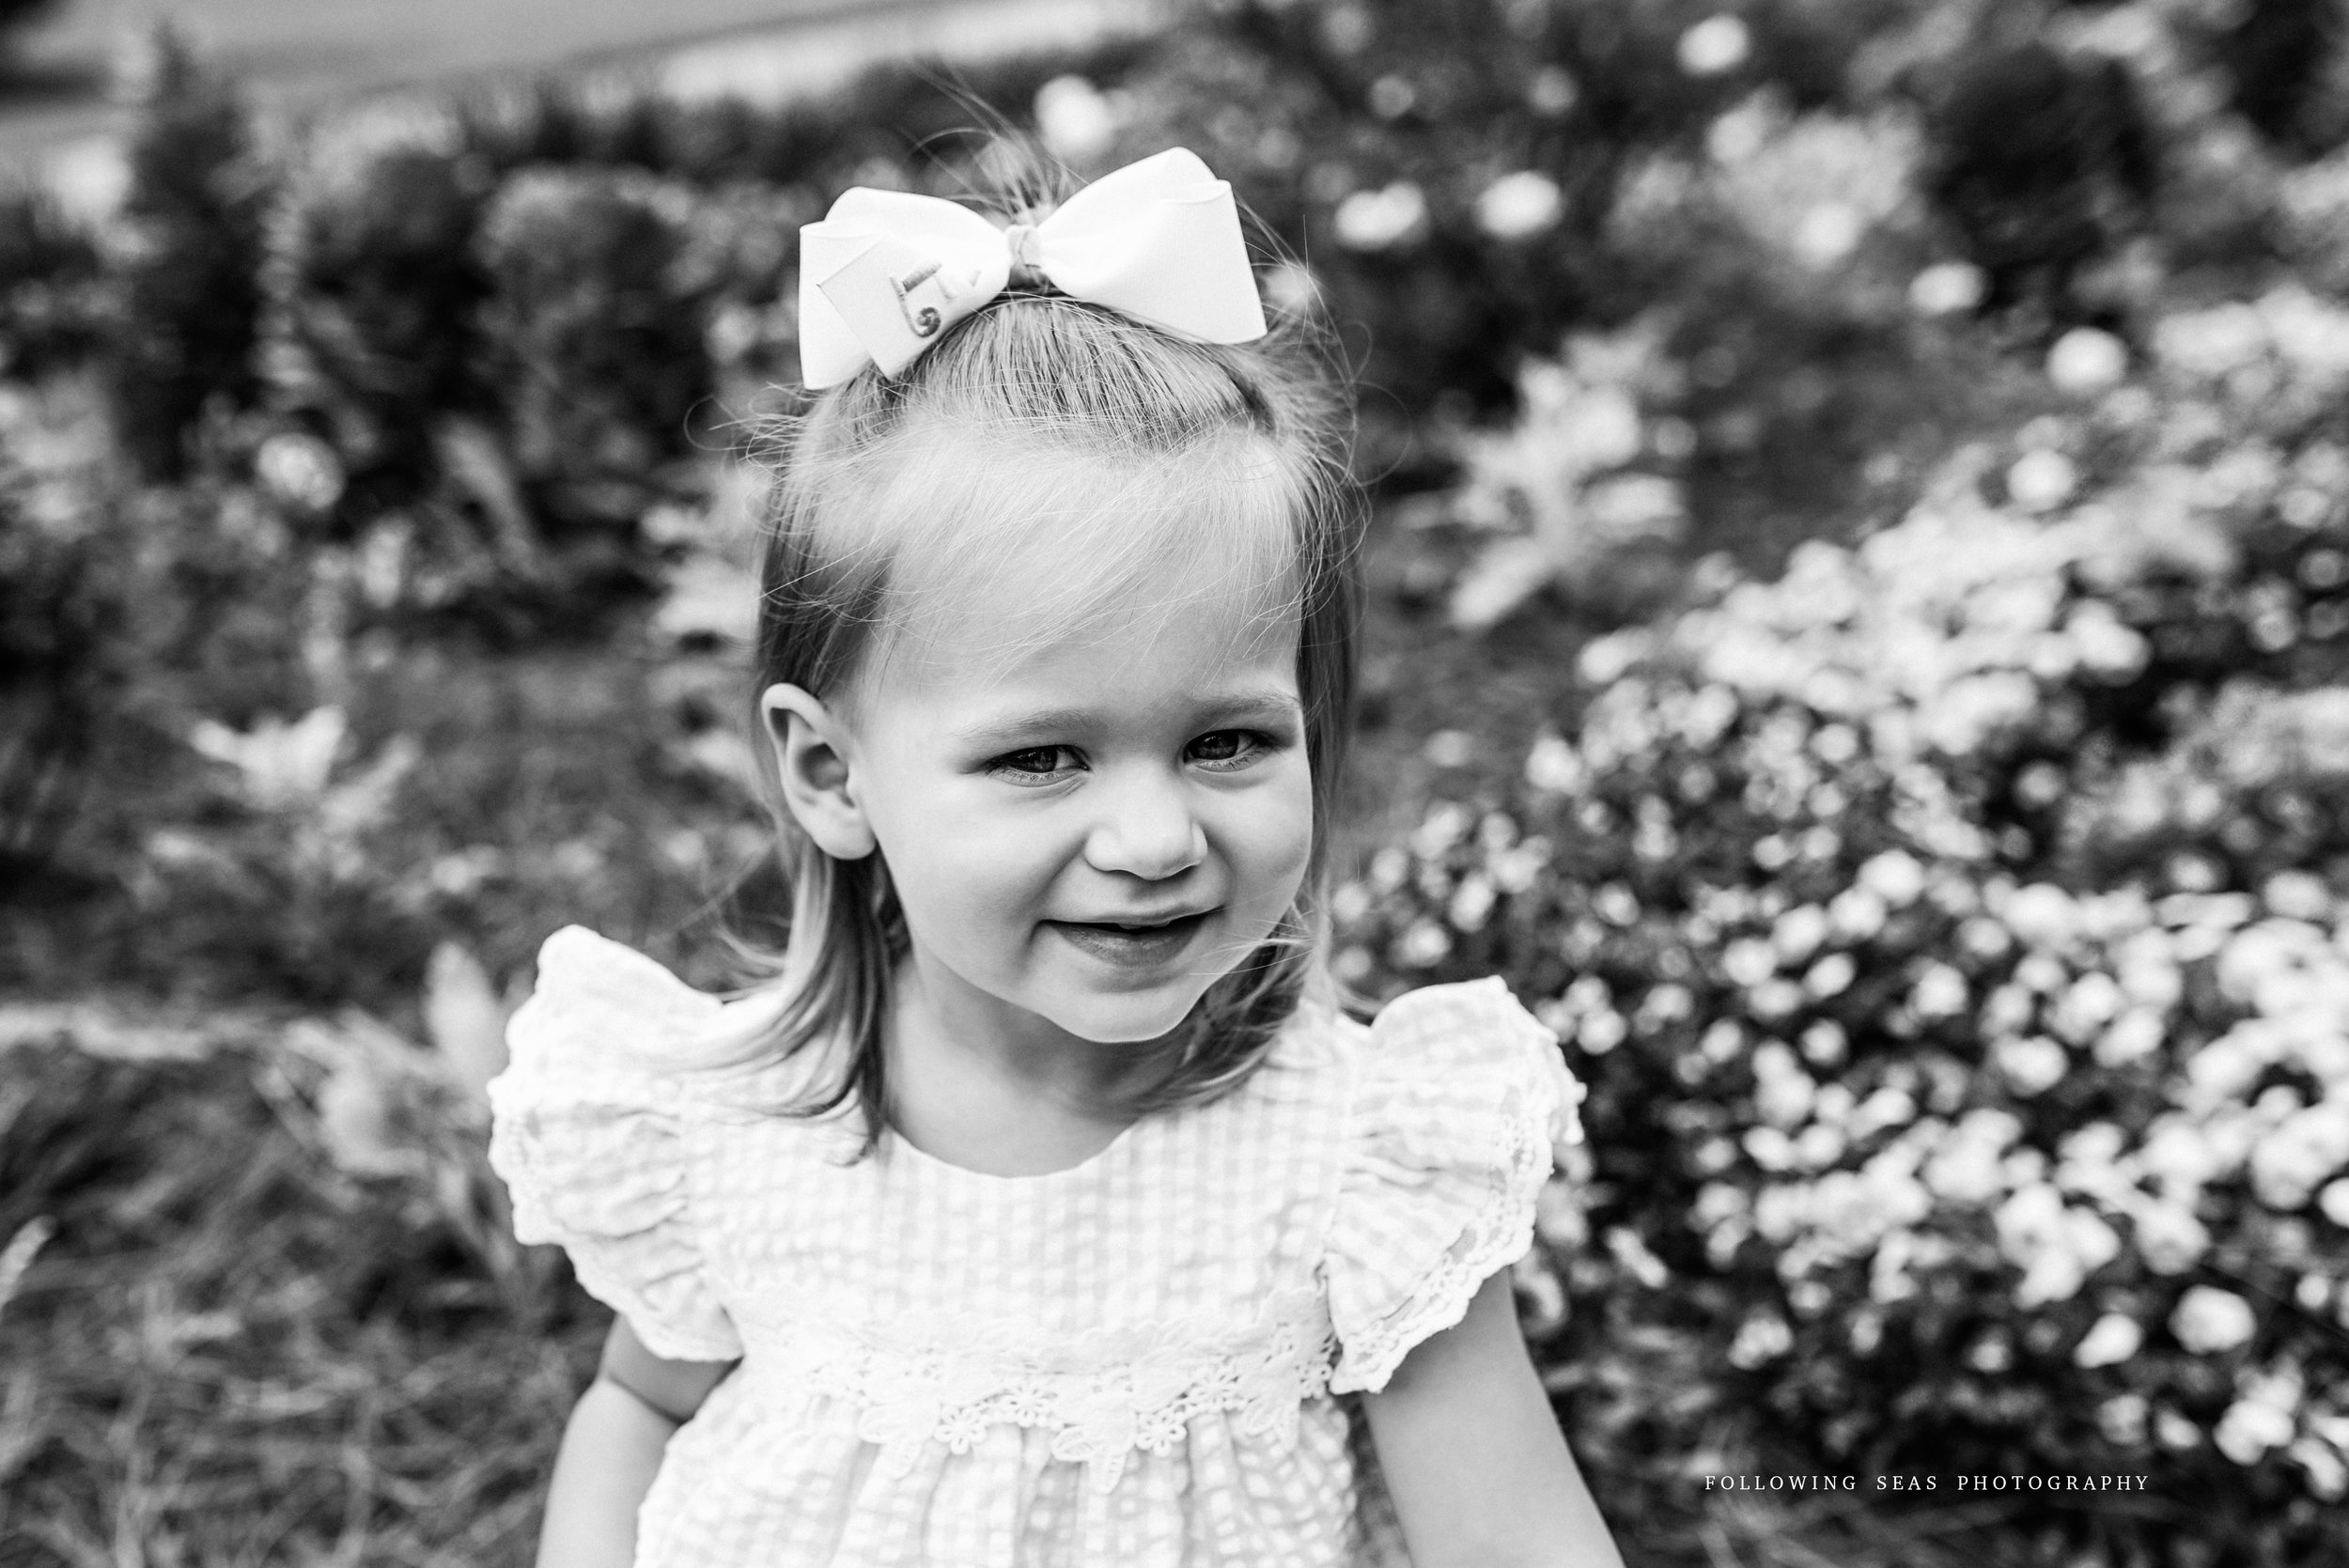 Charleston-Family-Photographer-Following-Seas-Photography-FSP_3455BW.jpg